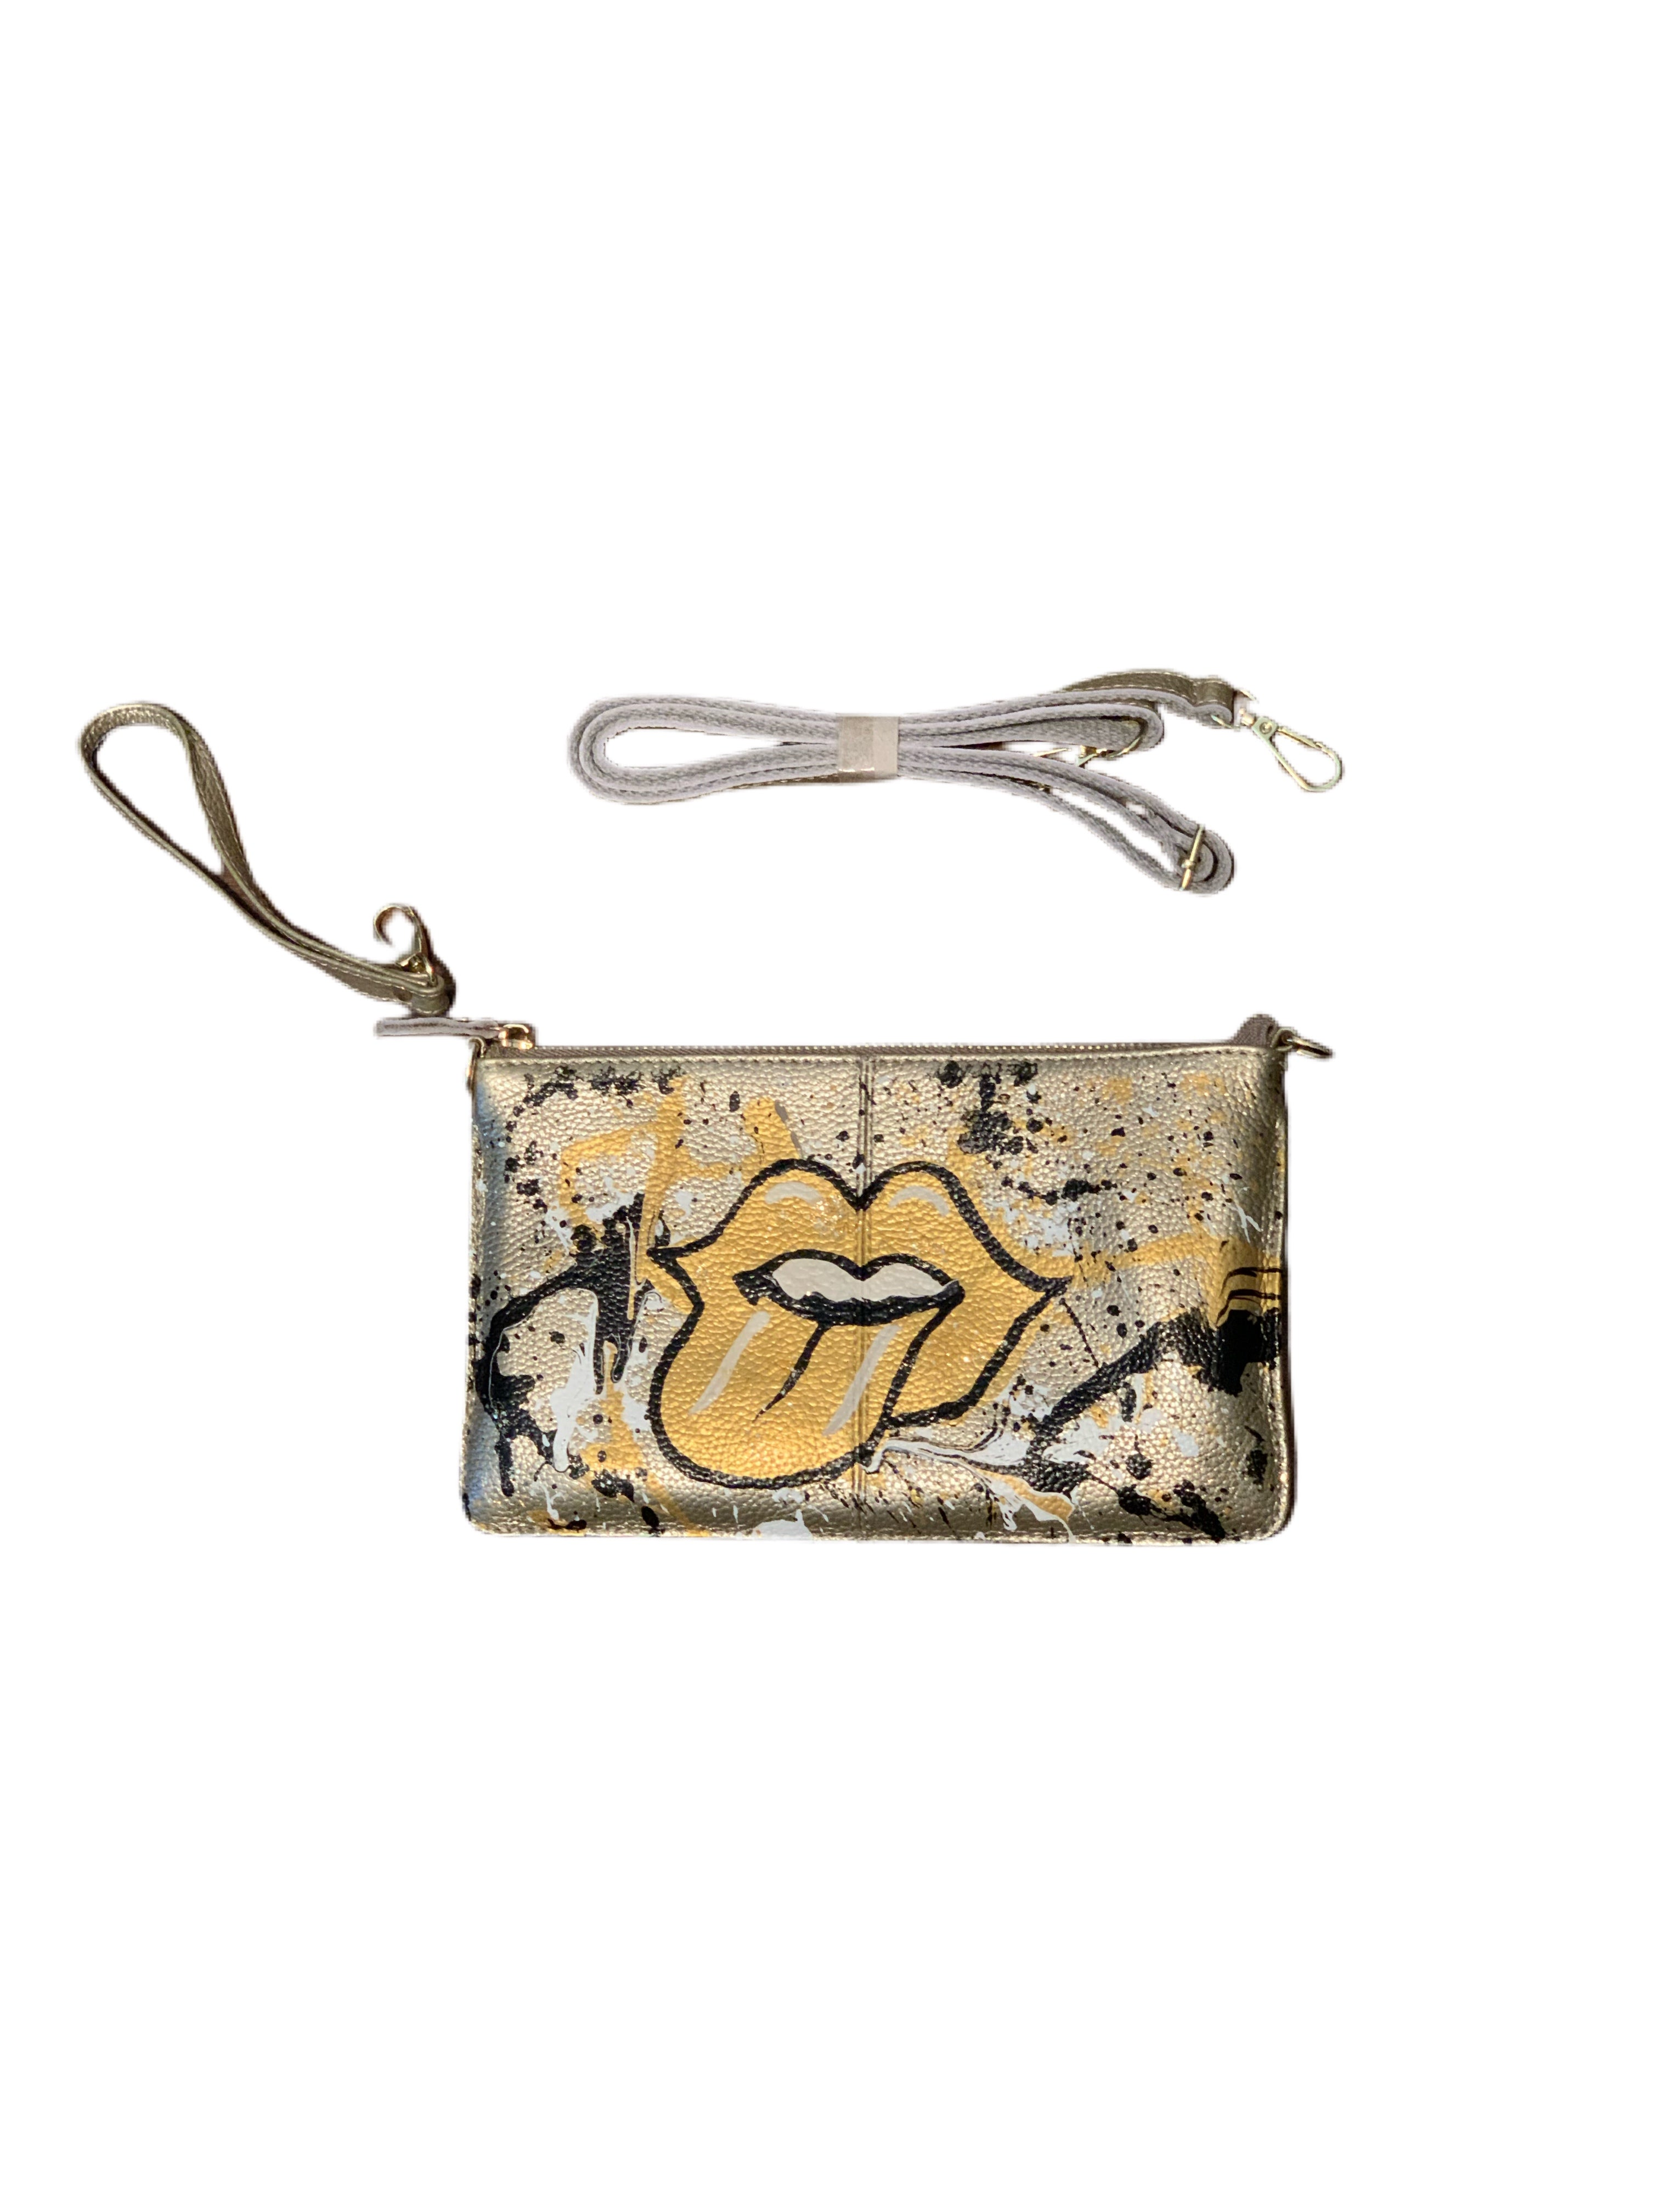 Handpainted Gold Lips Wristlet/Crossbody